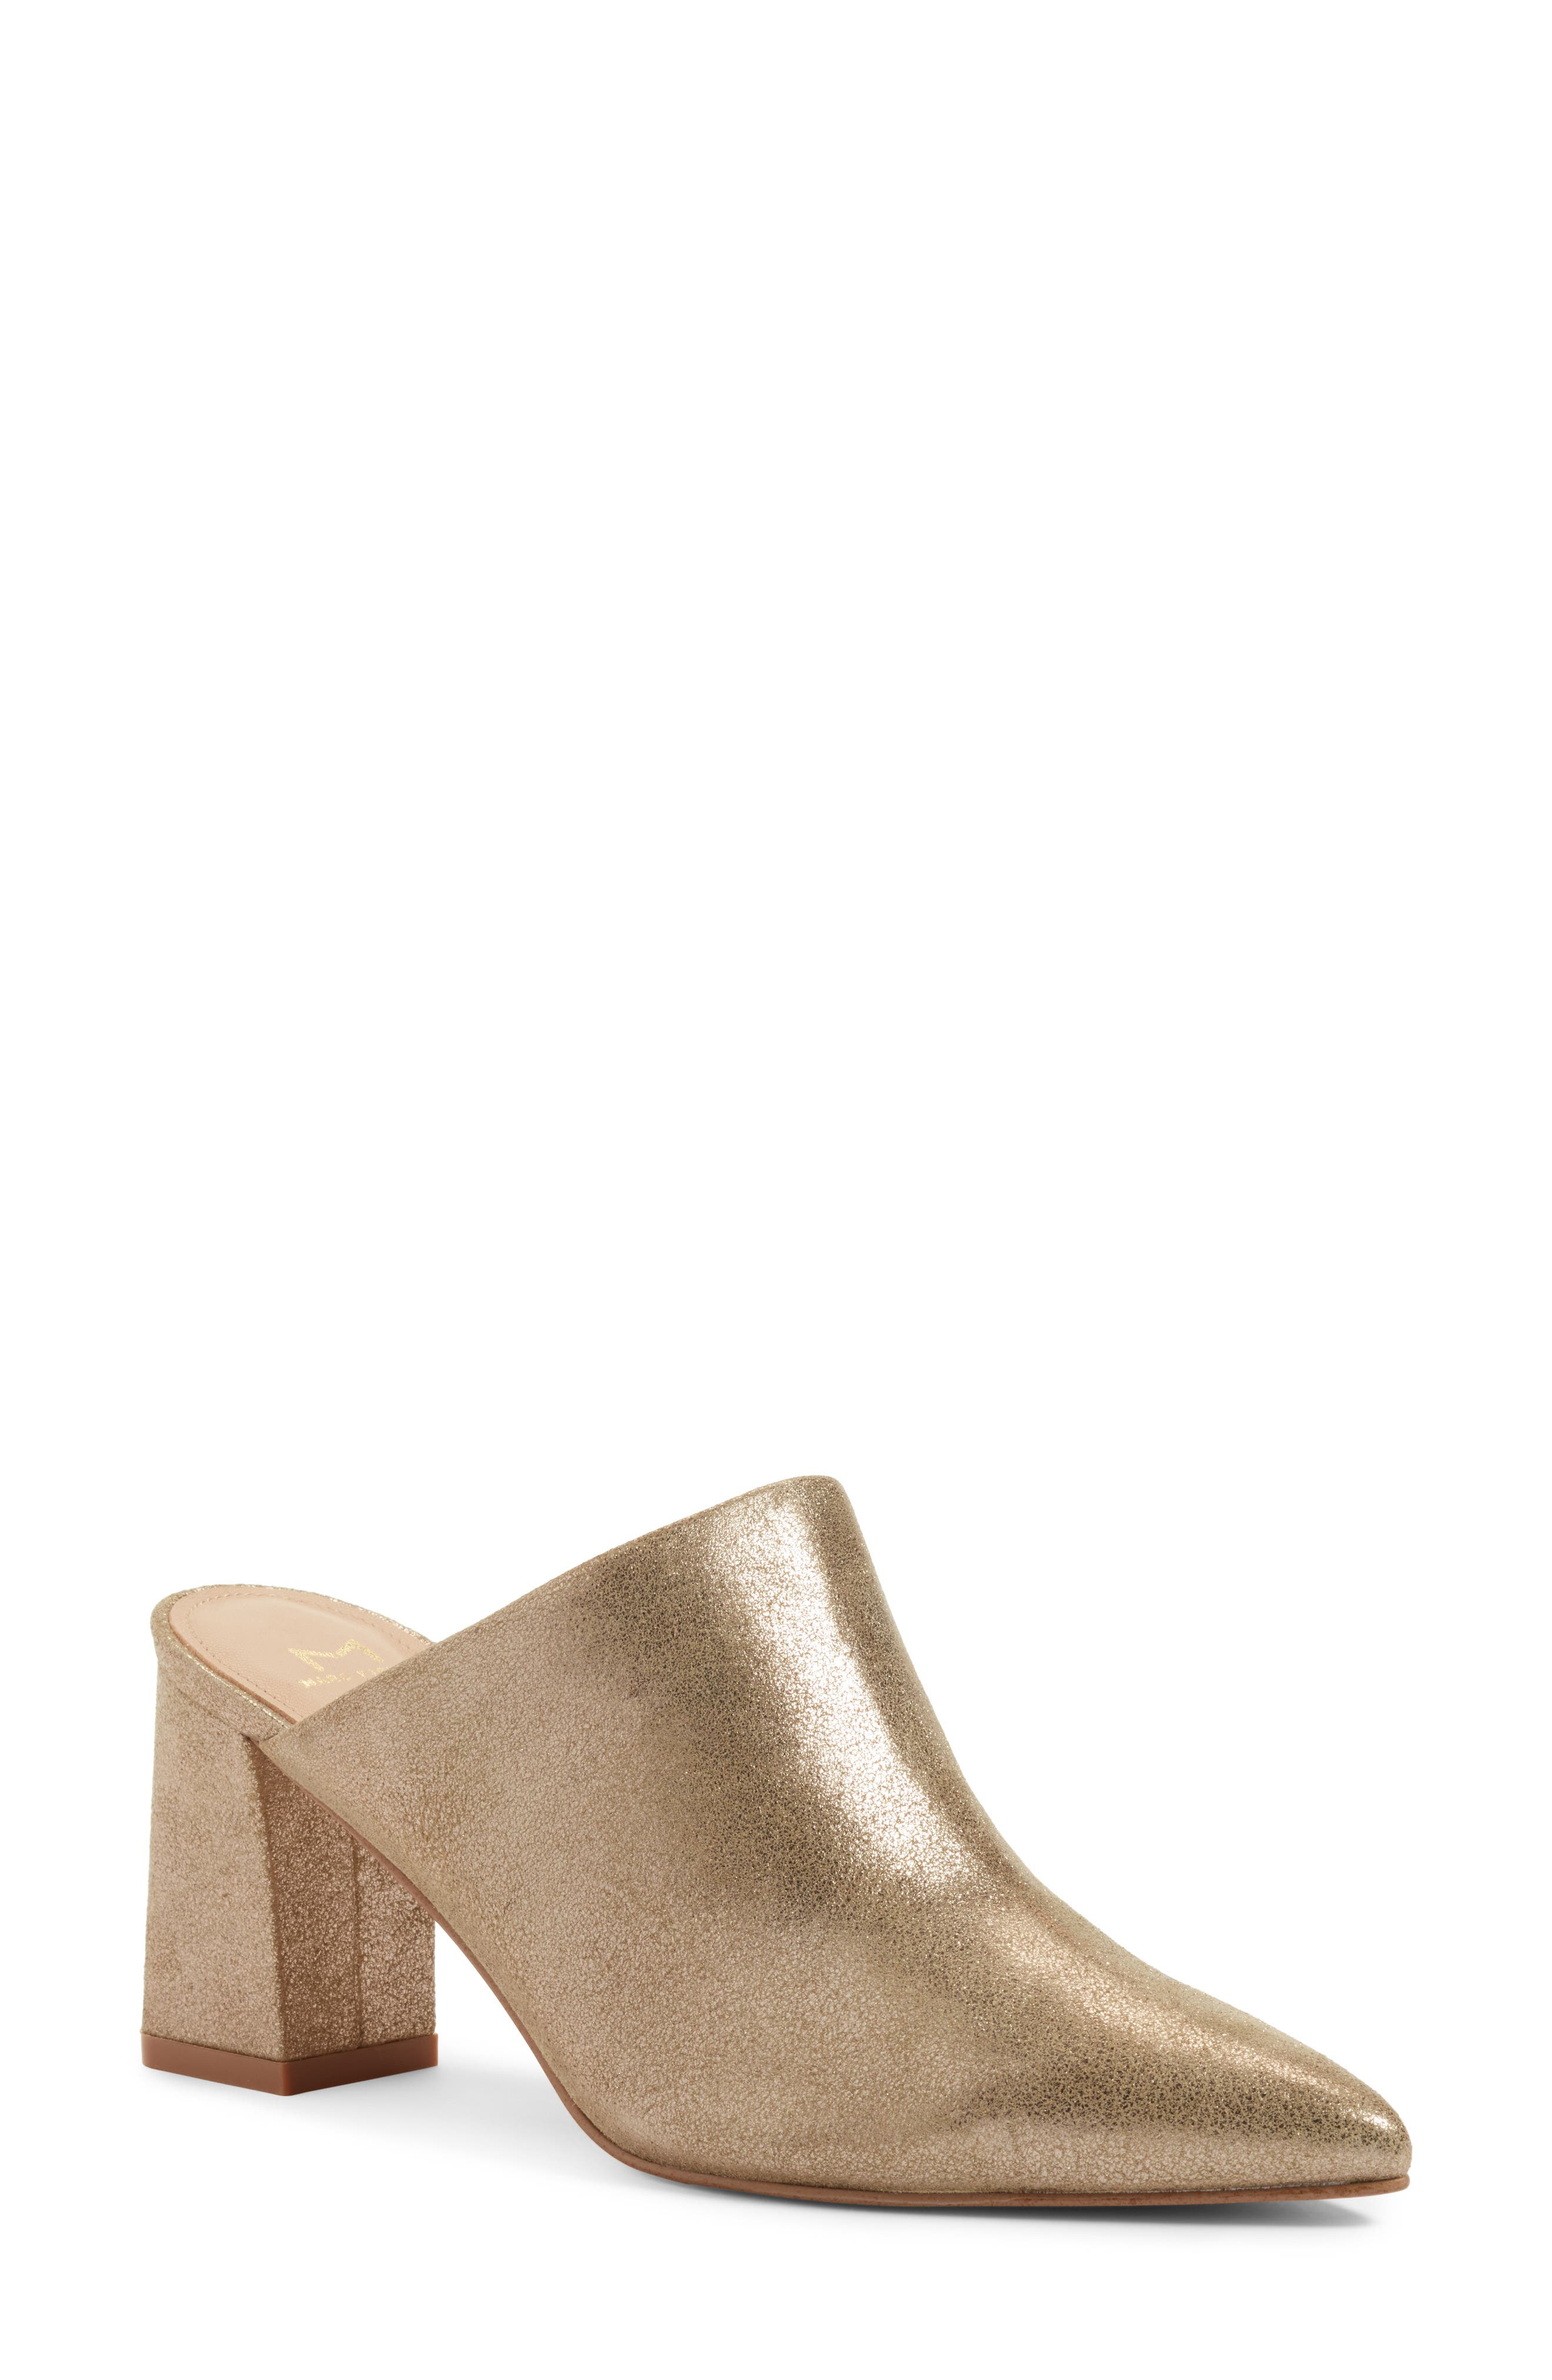 Alternate Image 1 Selected - Marc Fisher LTD Zivon Pointy Toe Mule (Women)